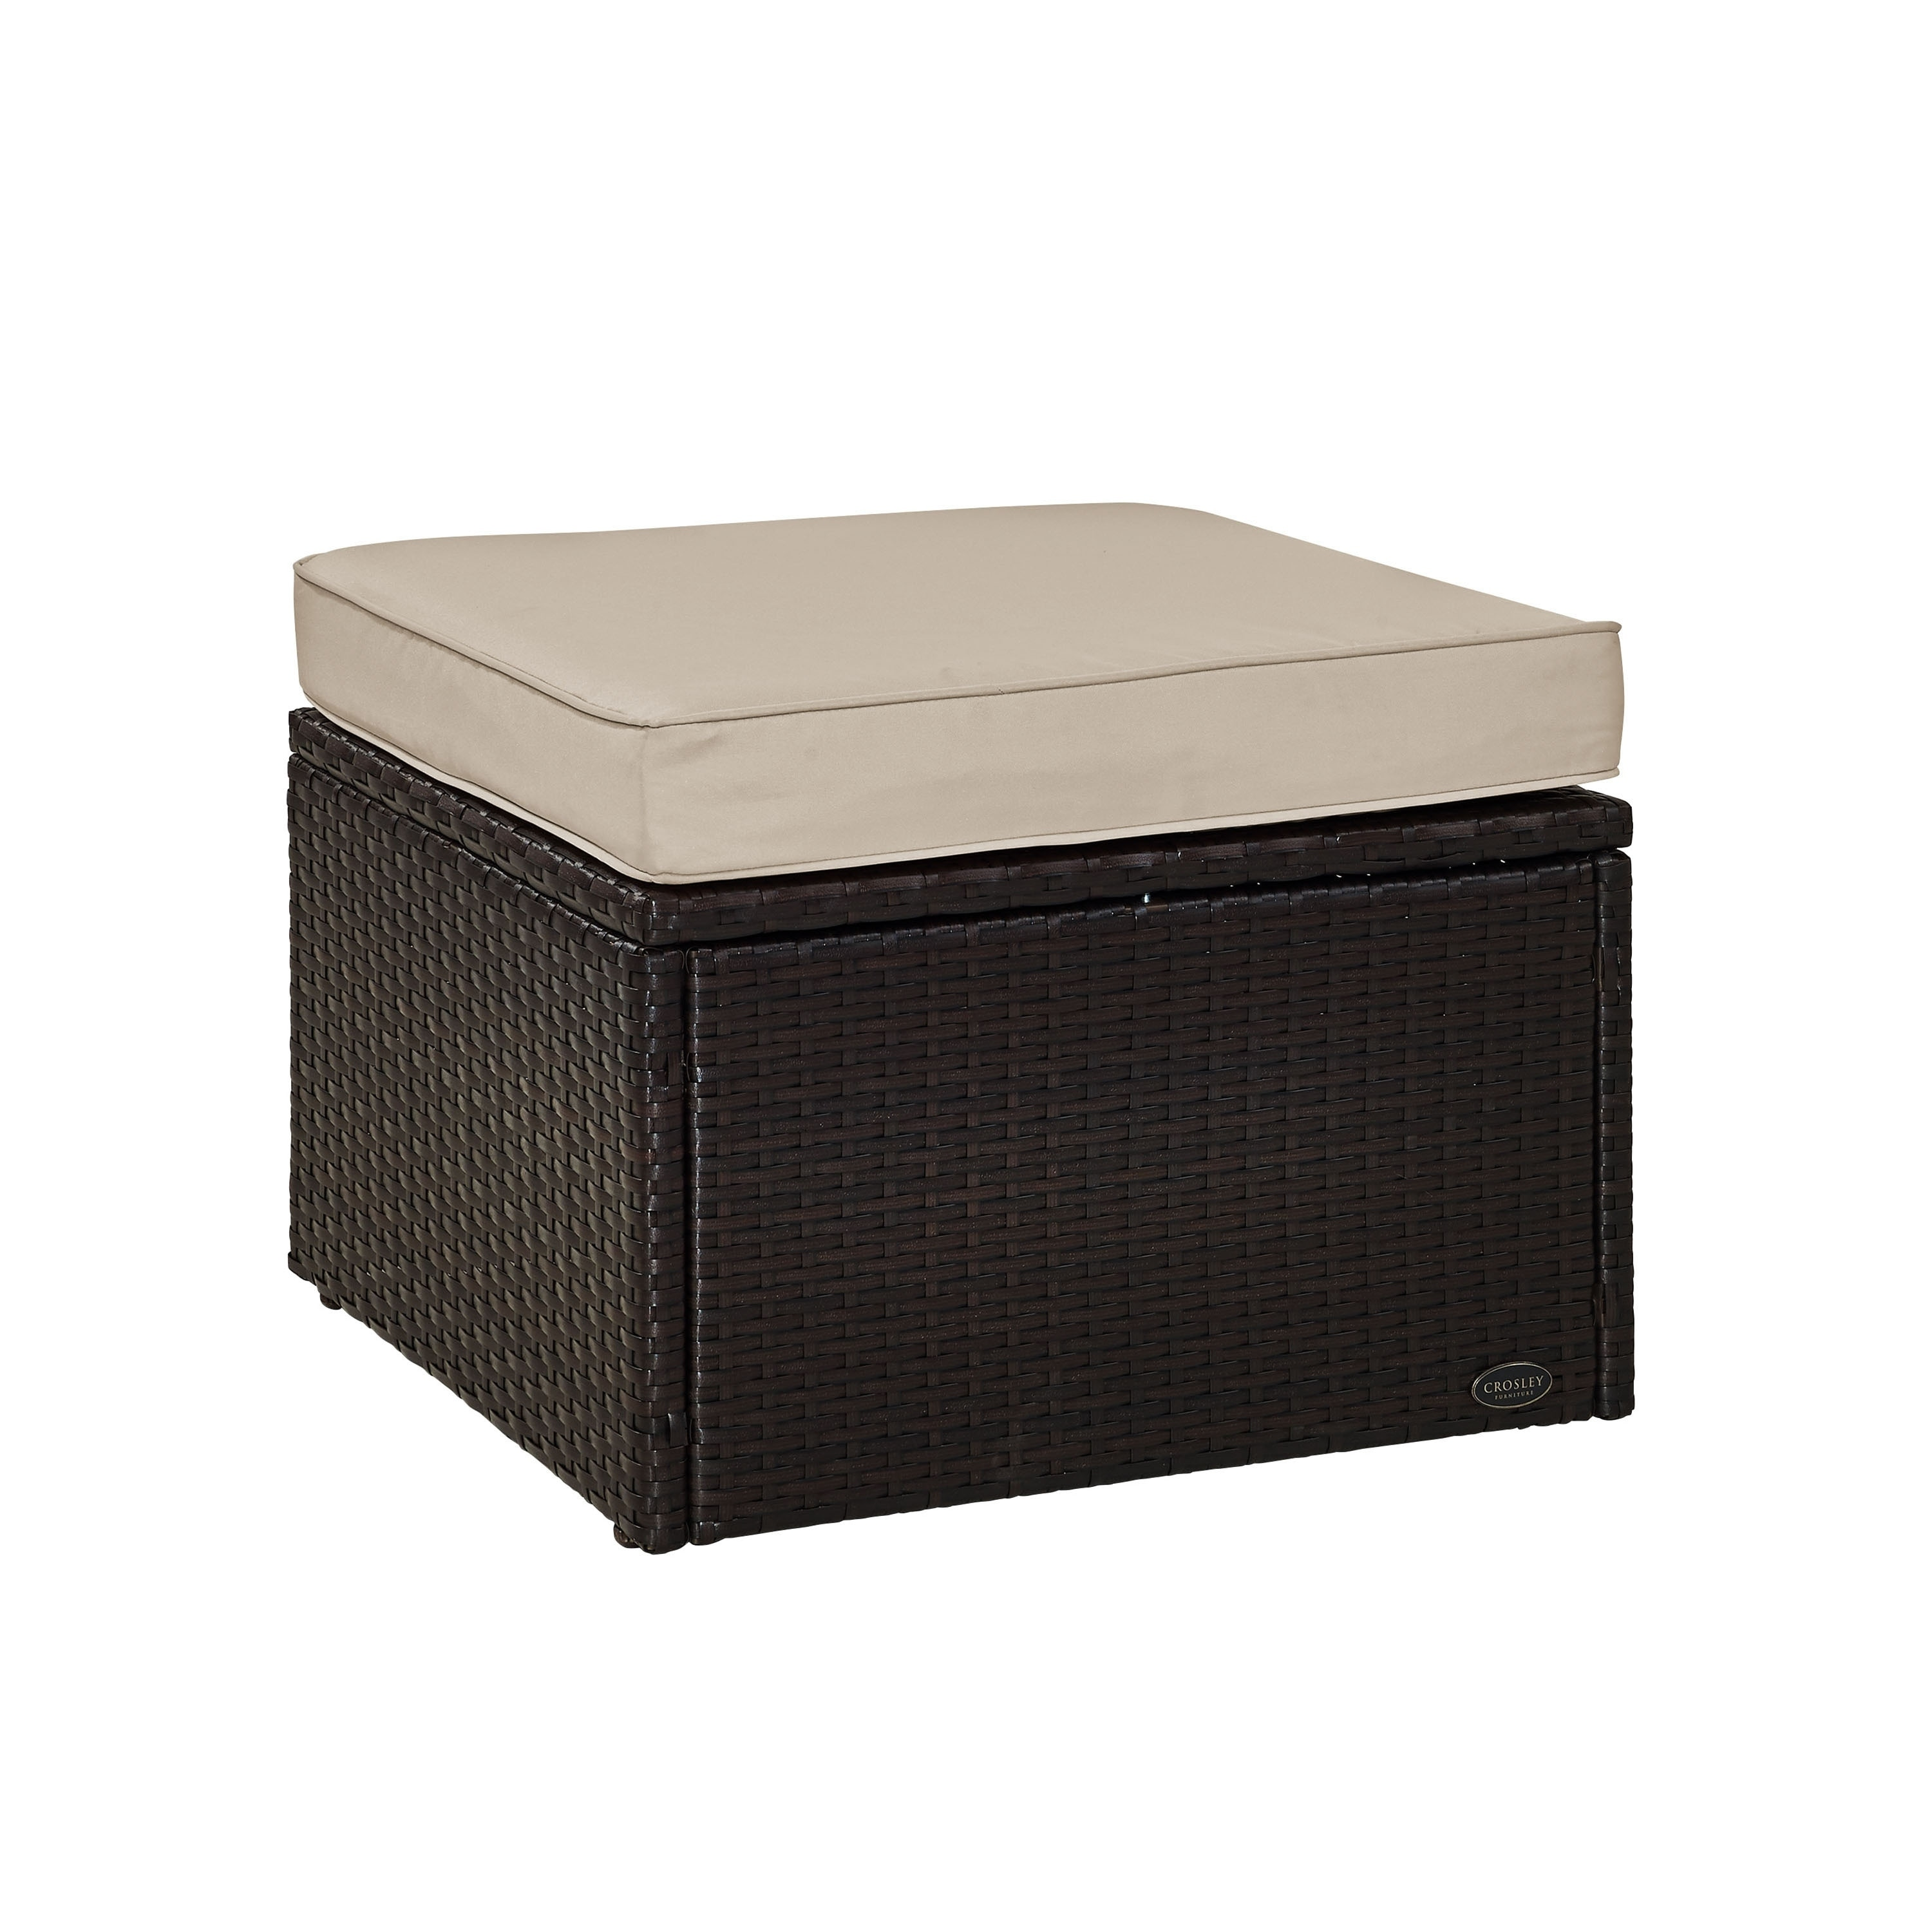 Wicker Ottoman Palm Harbor Outdoor Wicker Ottoman In Brown With Sand Cushions